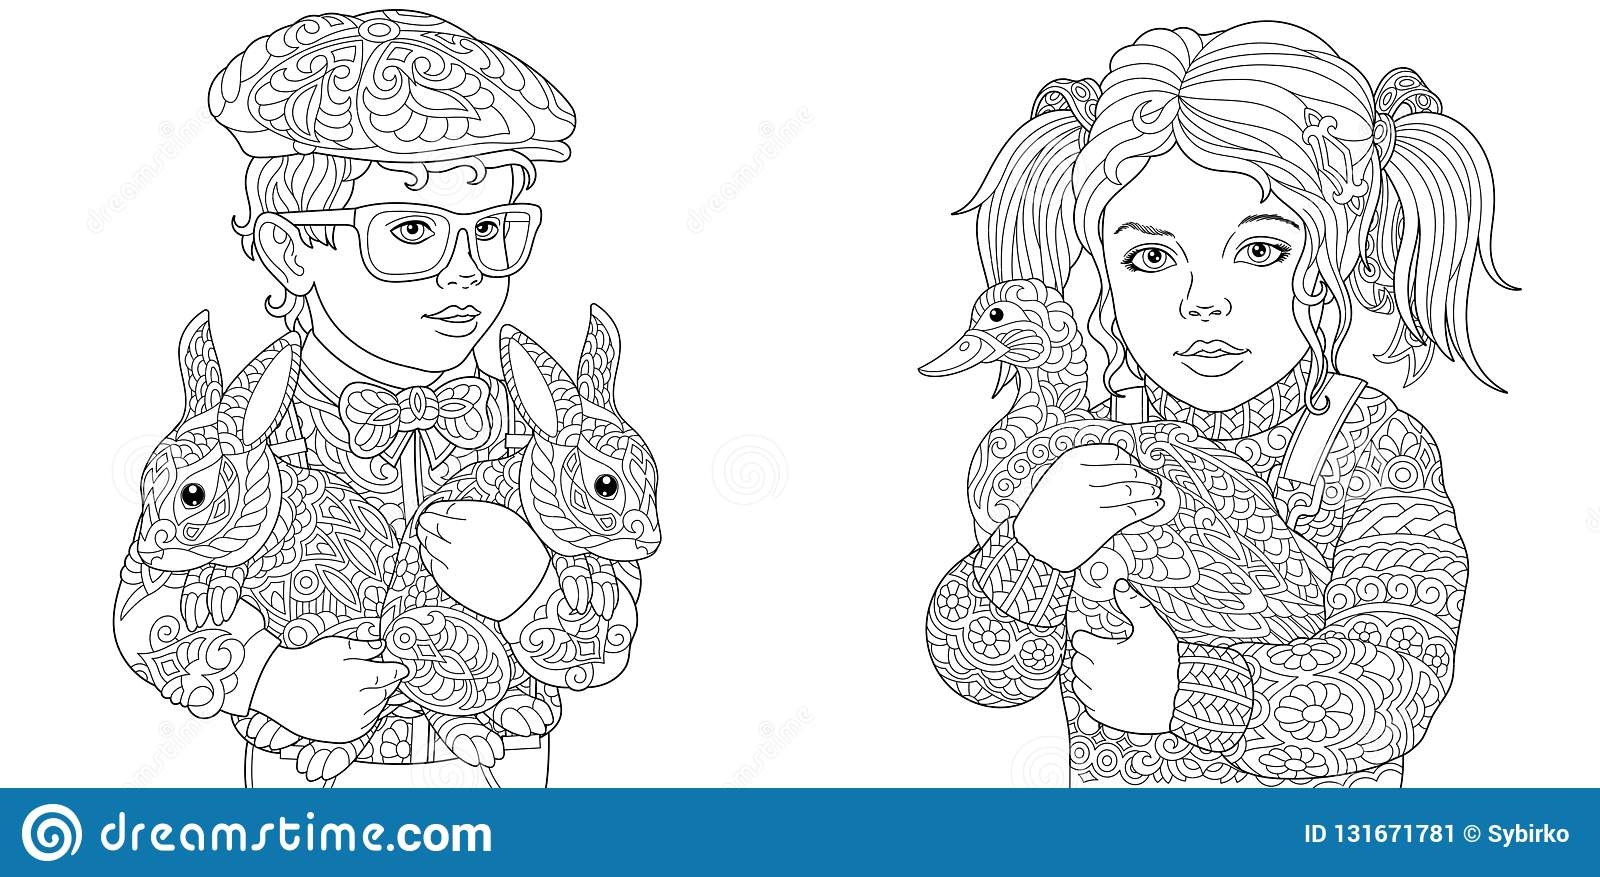 Farm- Animals Talking Coloring Page | Printable coloring pages | 877x1600